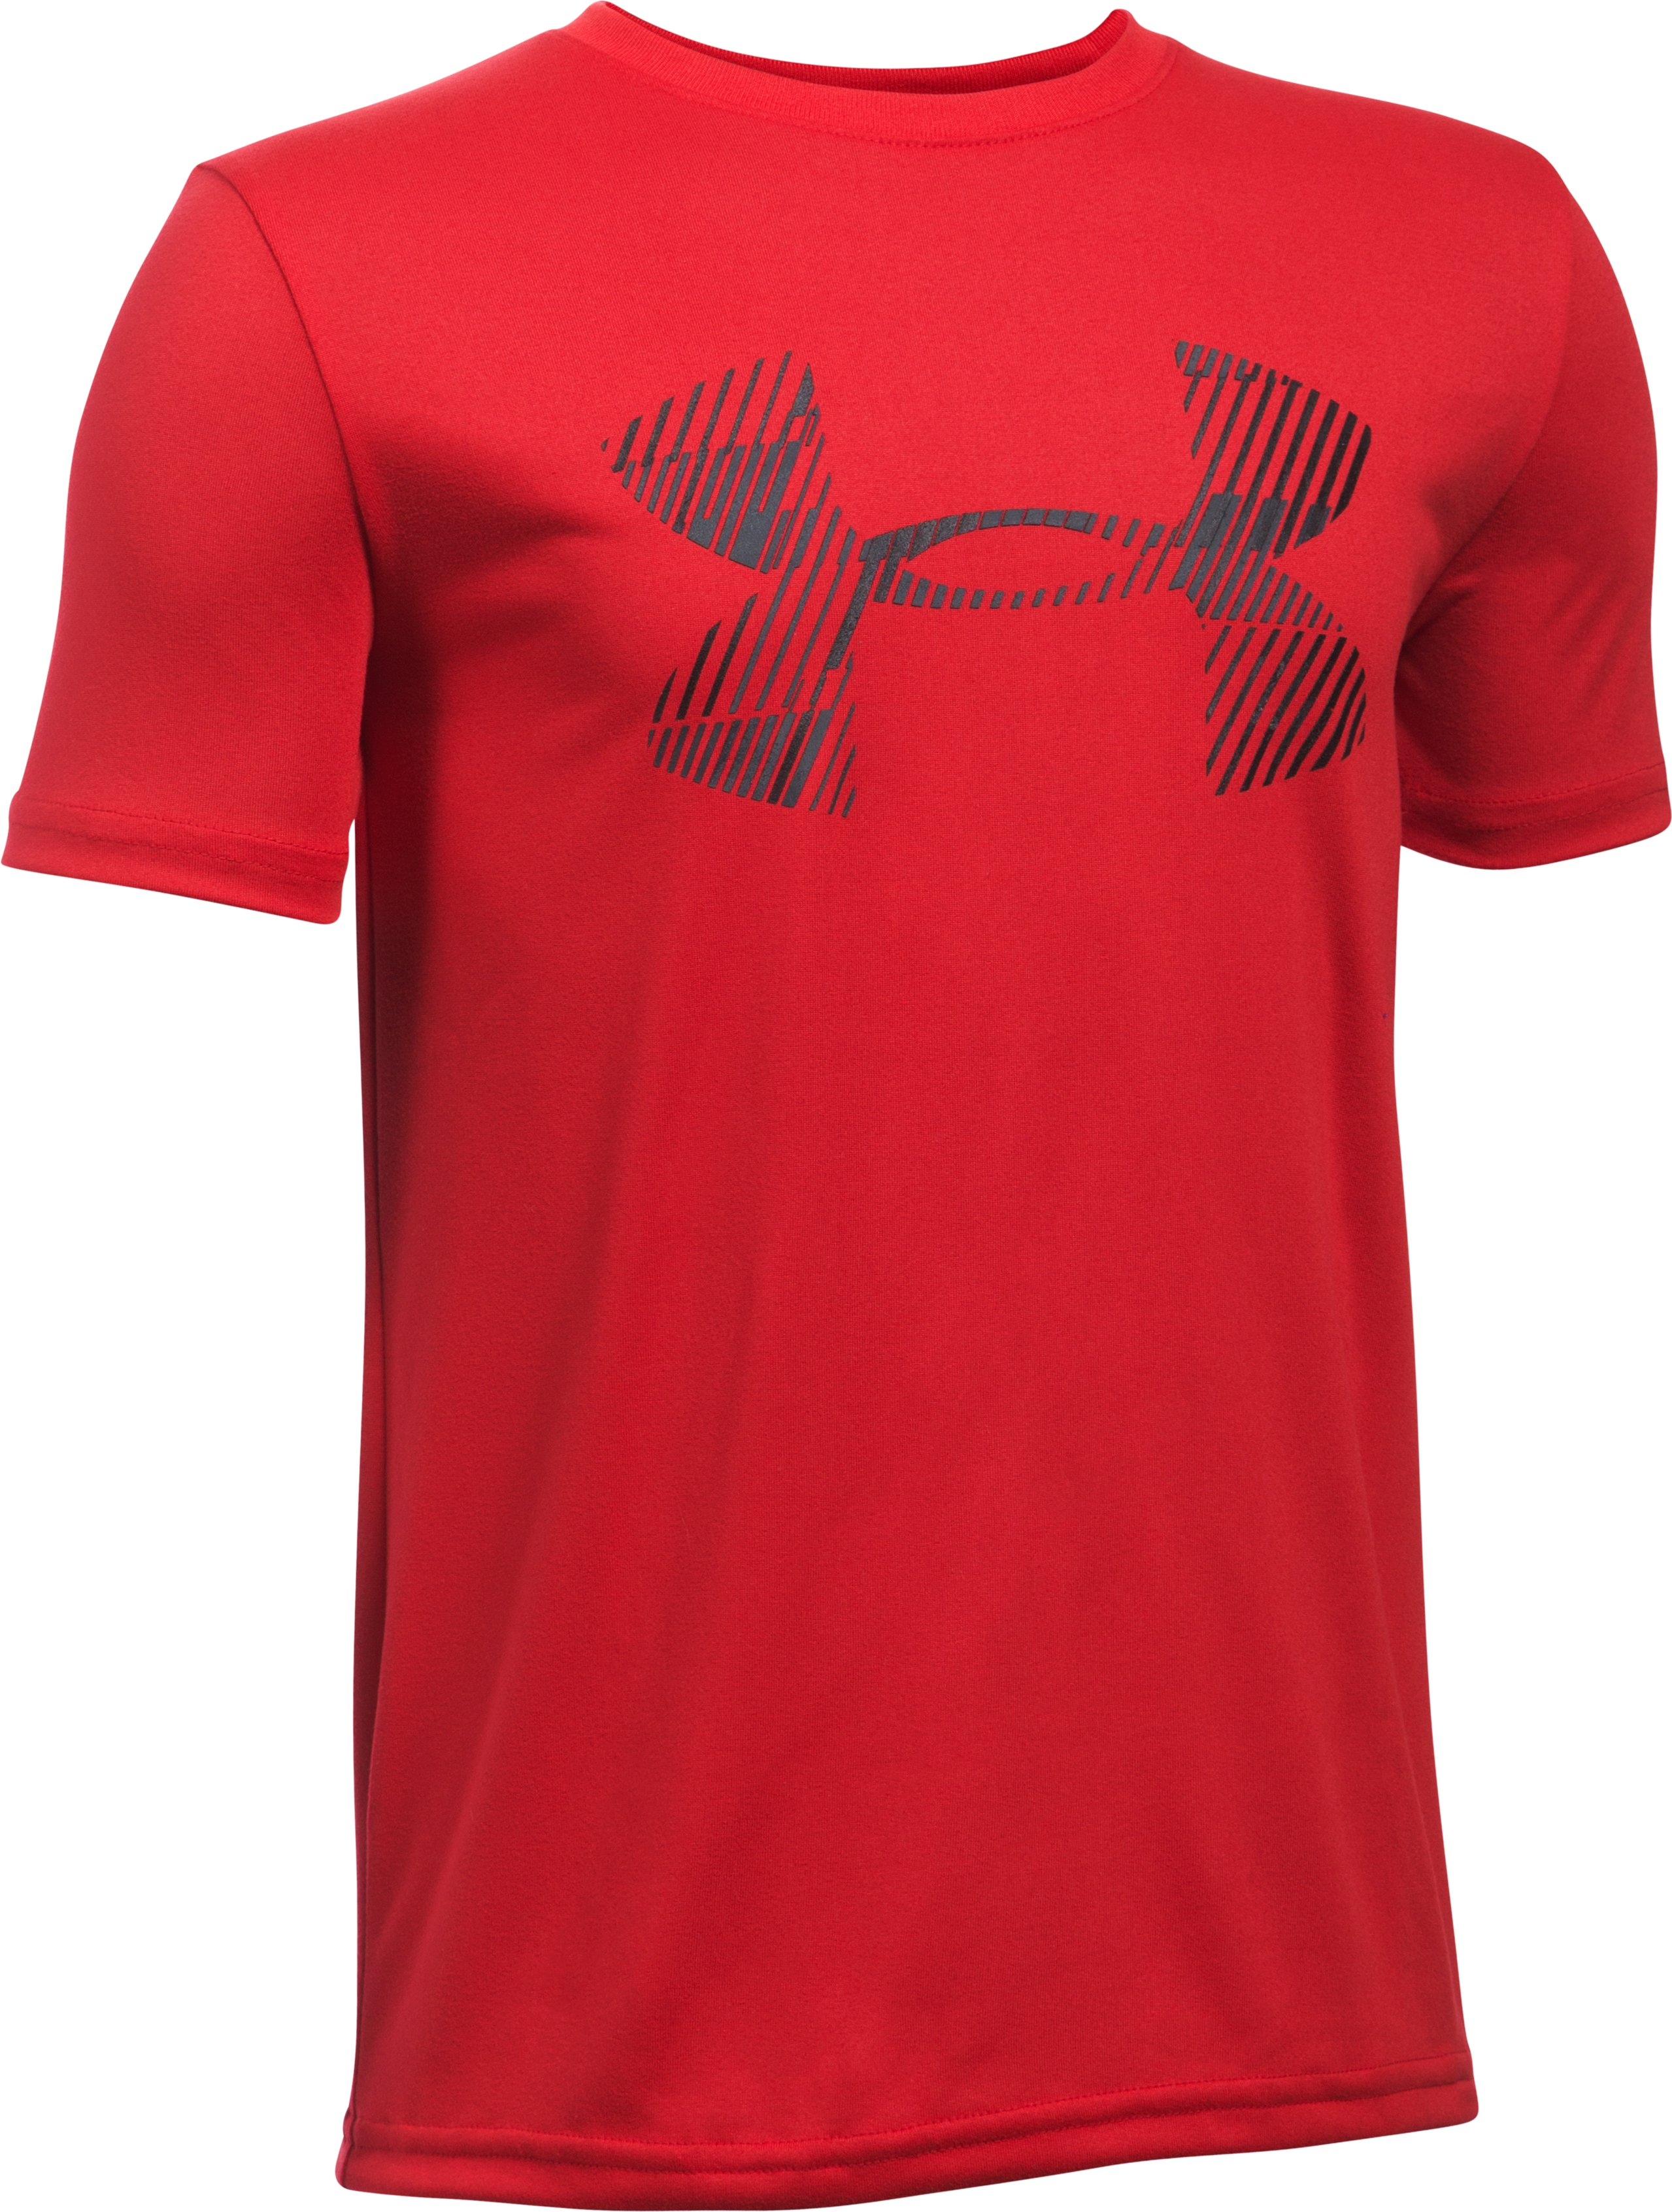 Boys' UA Combo Logo Short Sleeve T-Shirt, Red